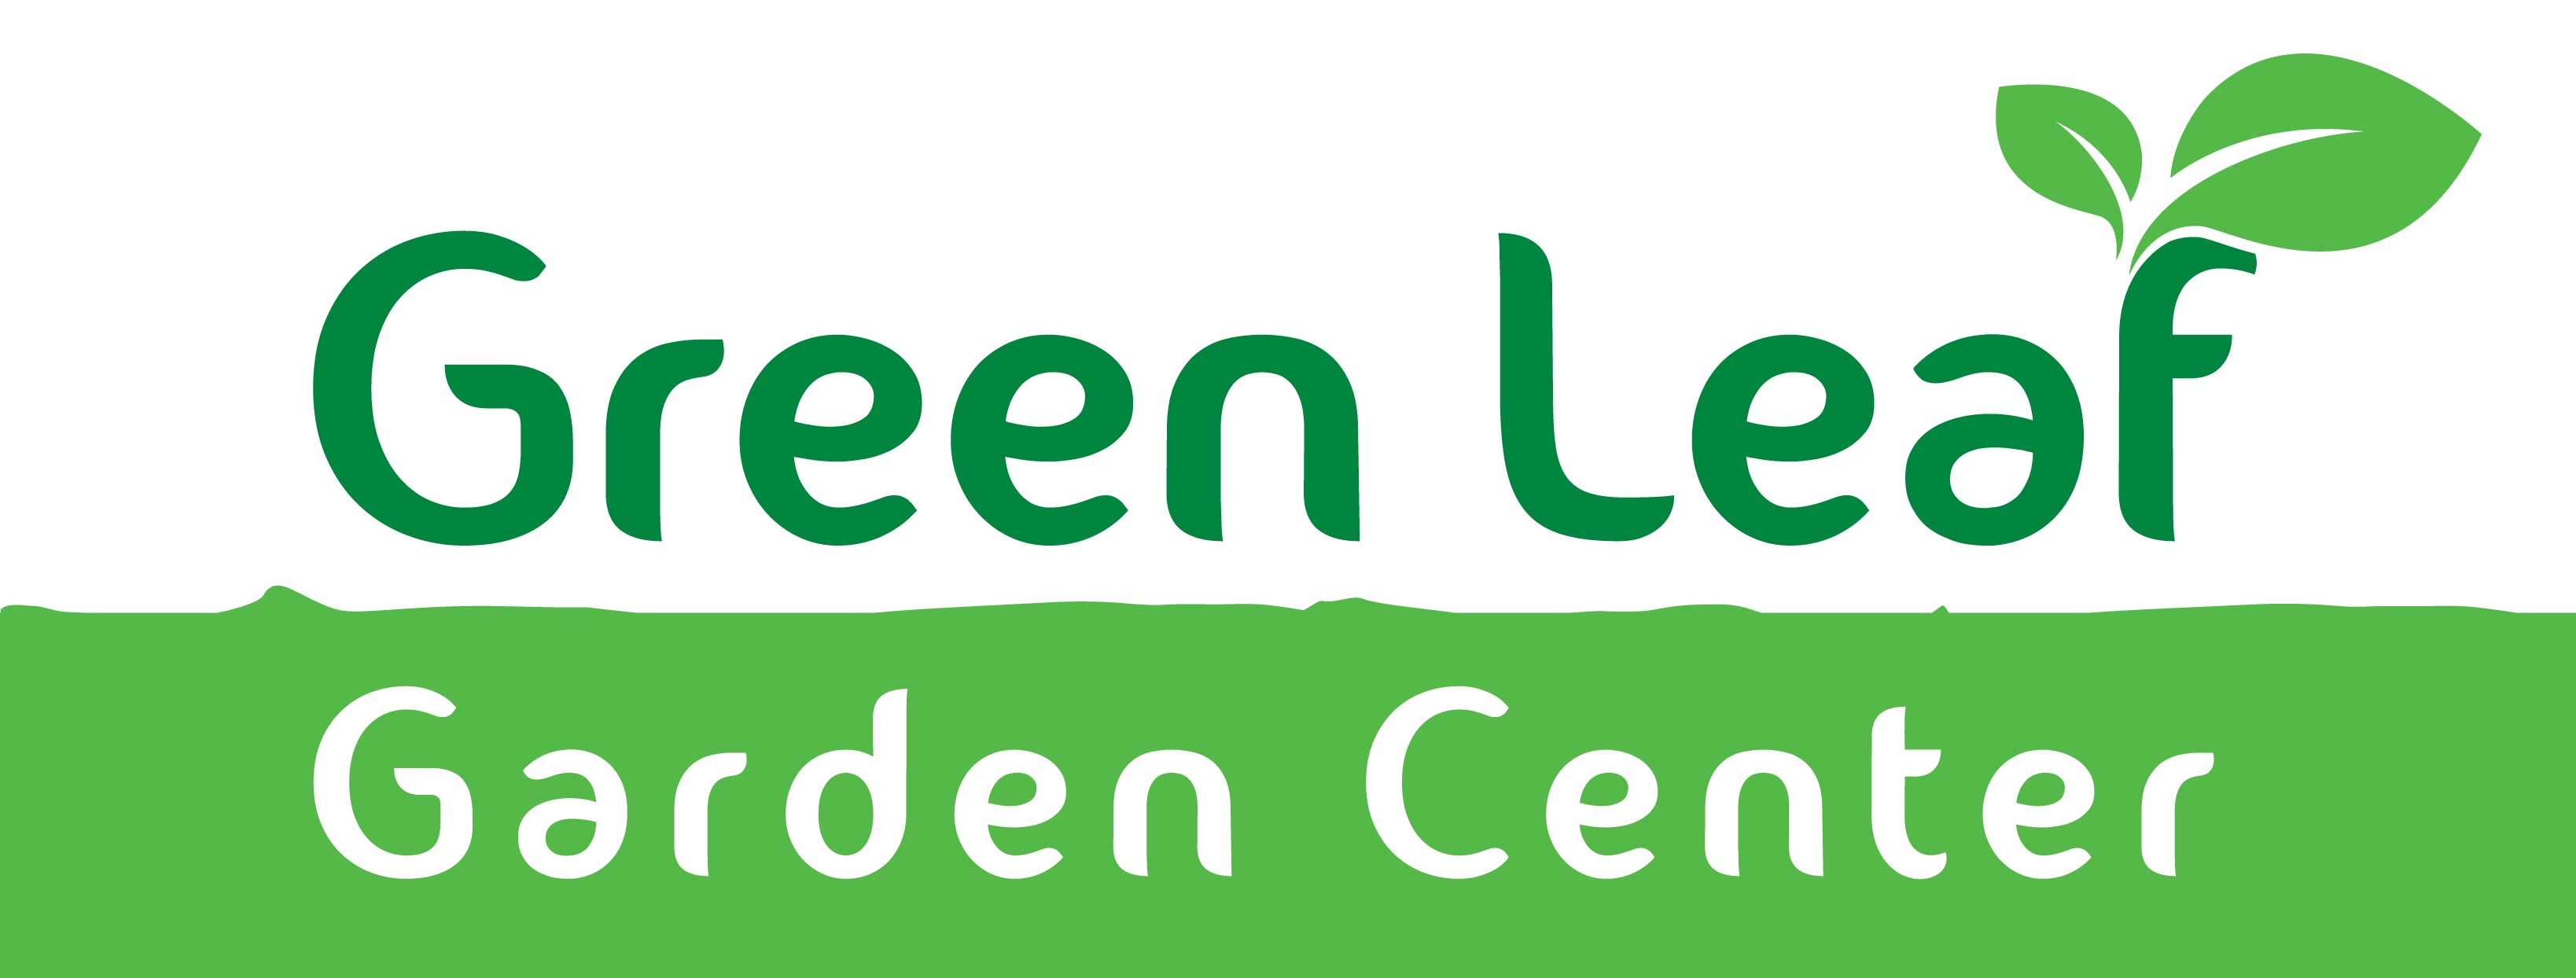 Greenleaf Garden Center